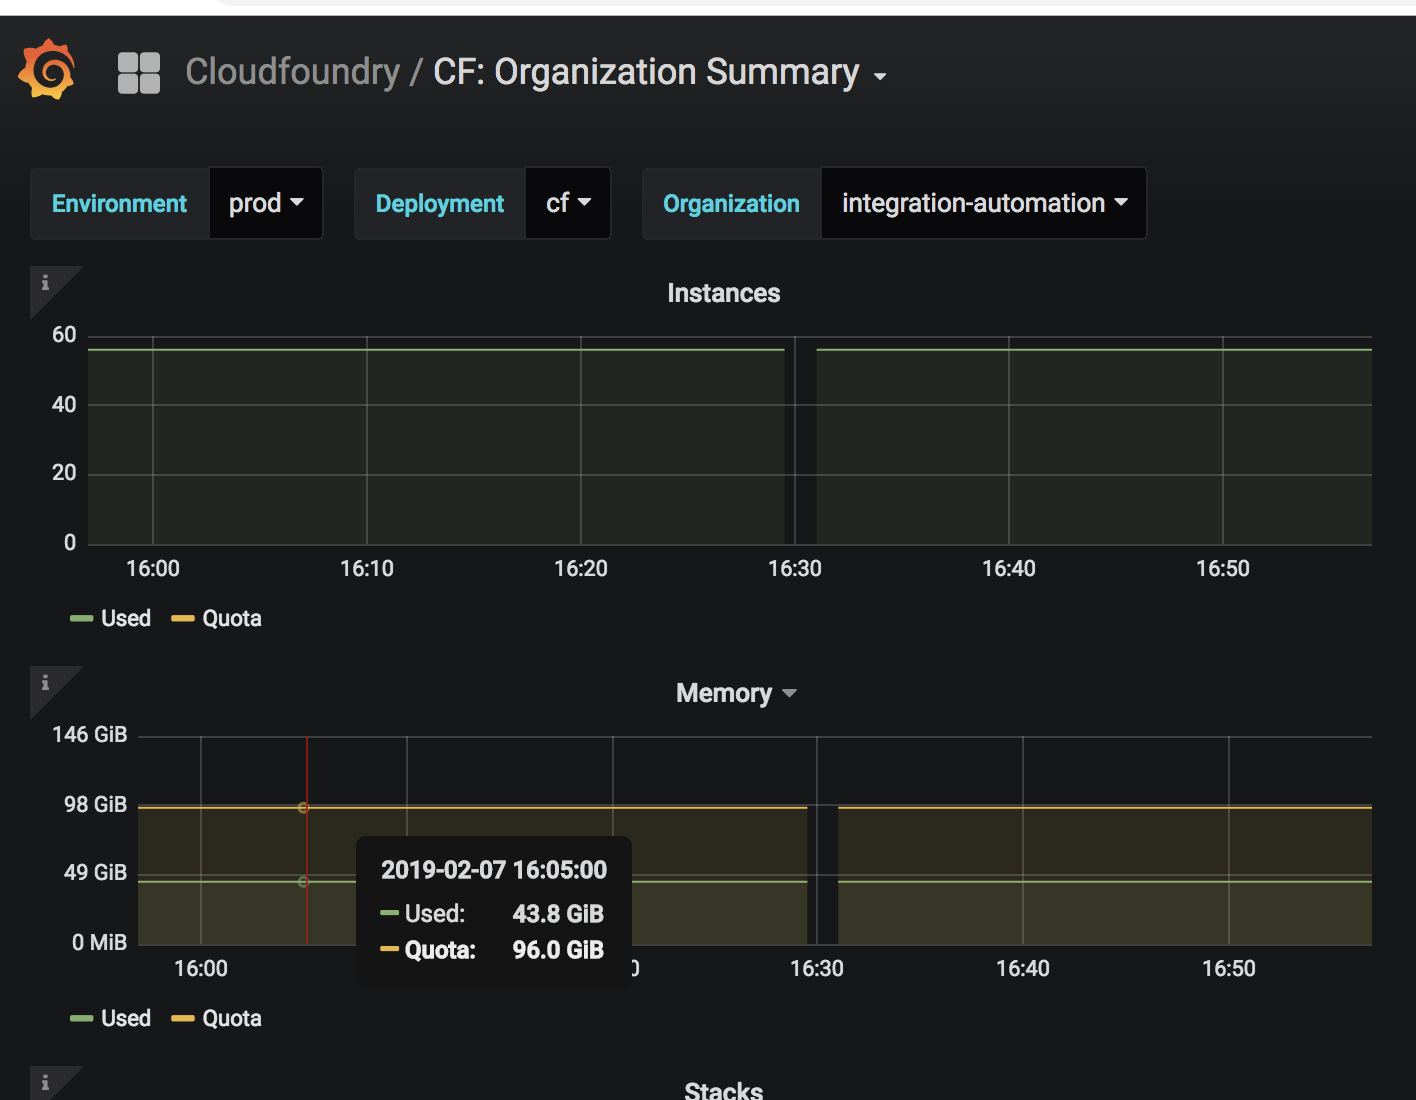 cloudfoundry-community - Bountysource